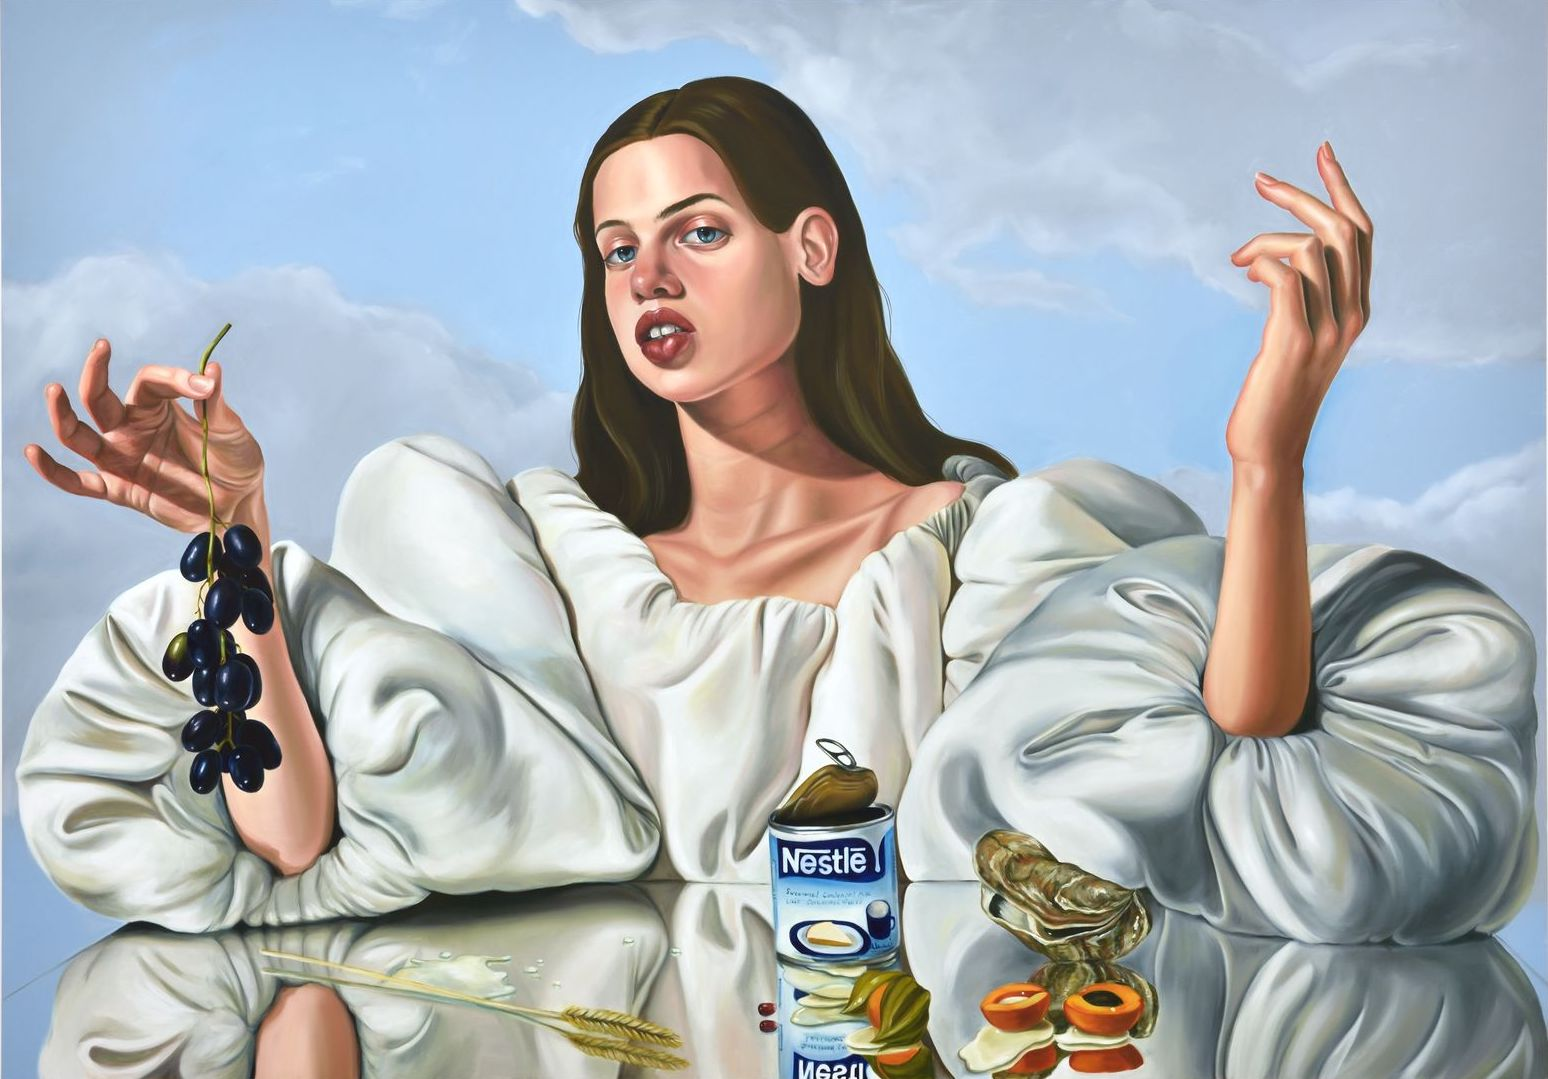 Chloe Wise, Lactose Tolerance, 2017. Oil on canvas © 2019 Chloe Wise / Artists Rights Society (ARS), New York